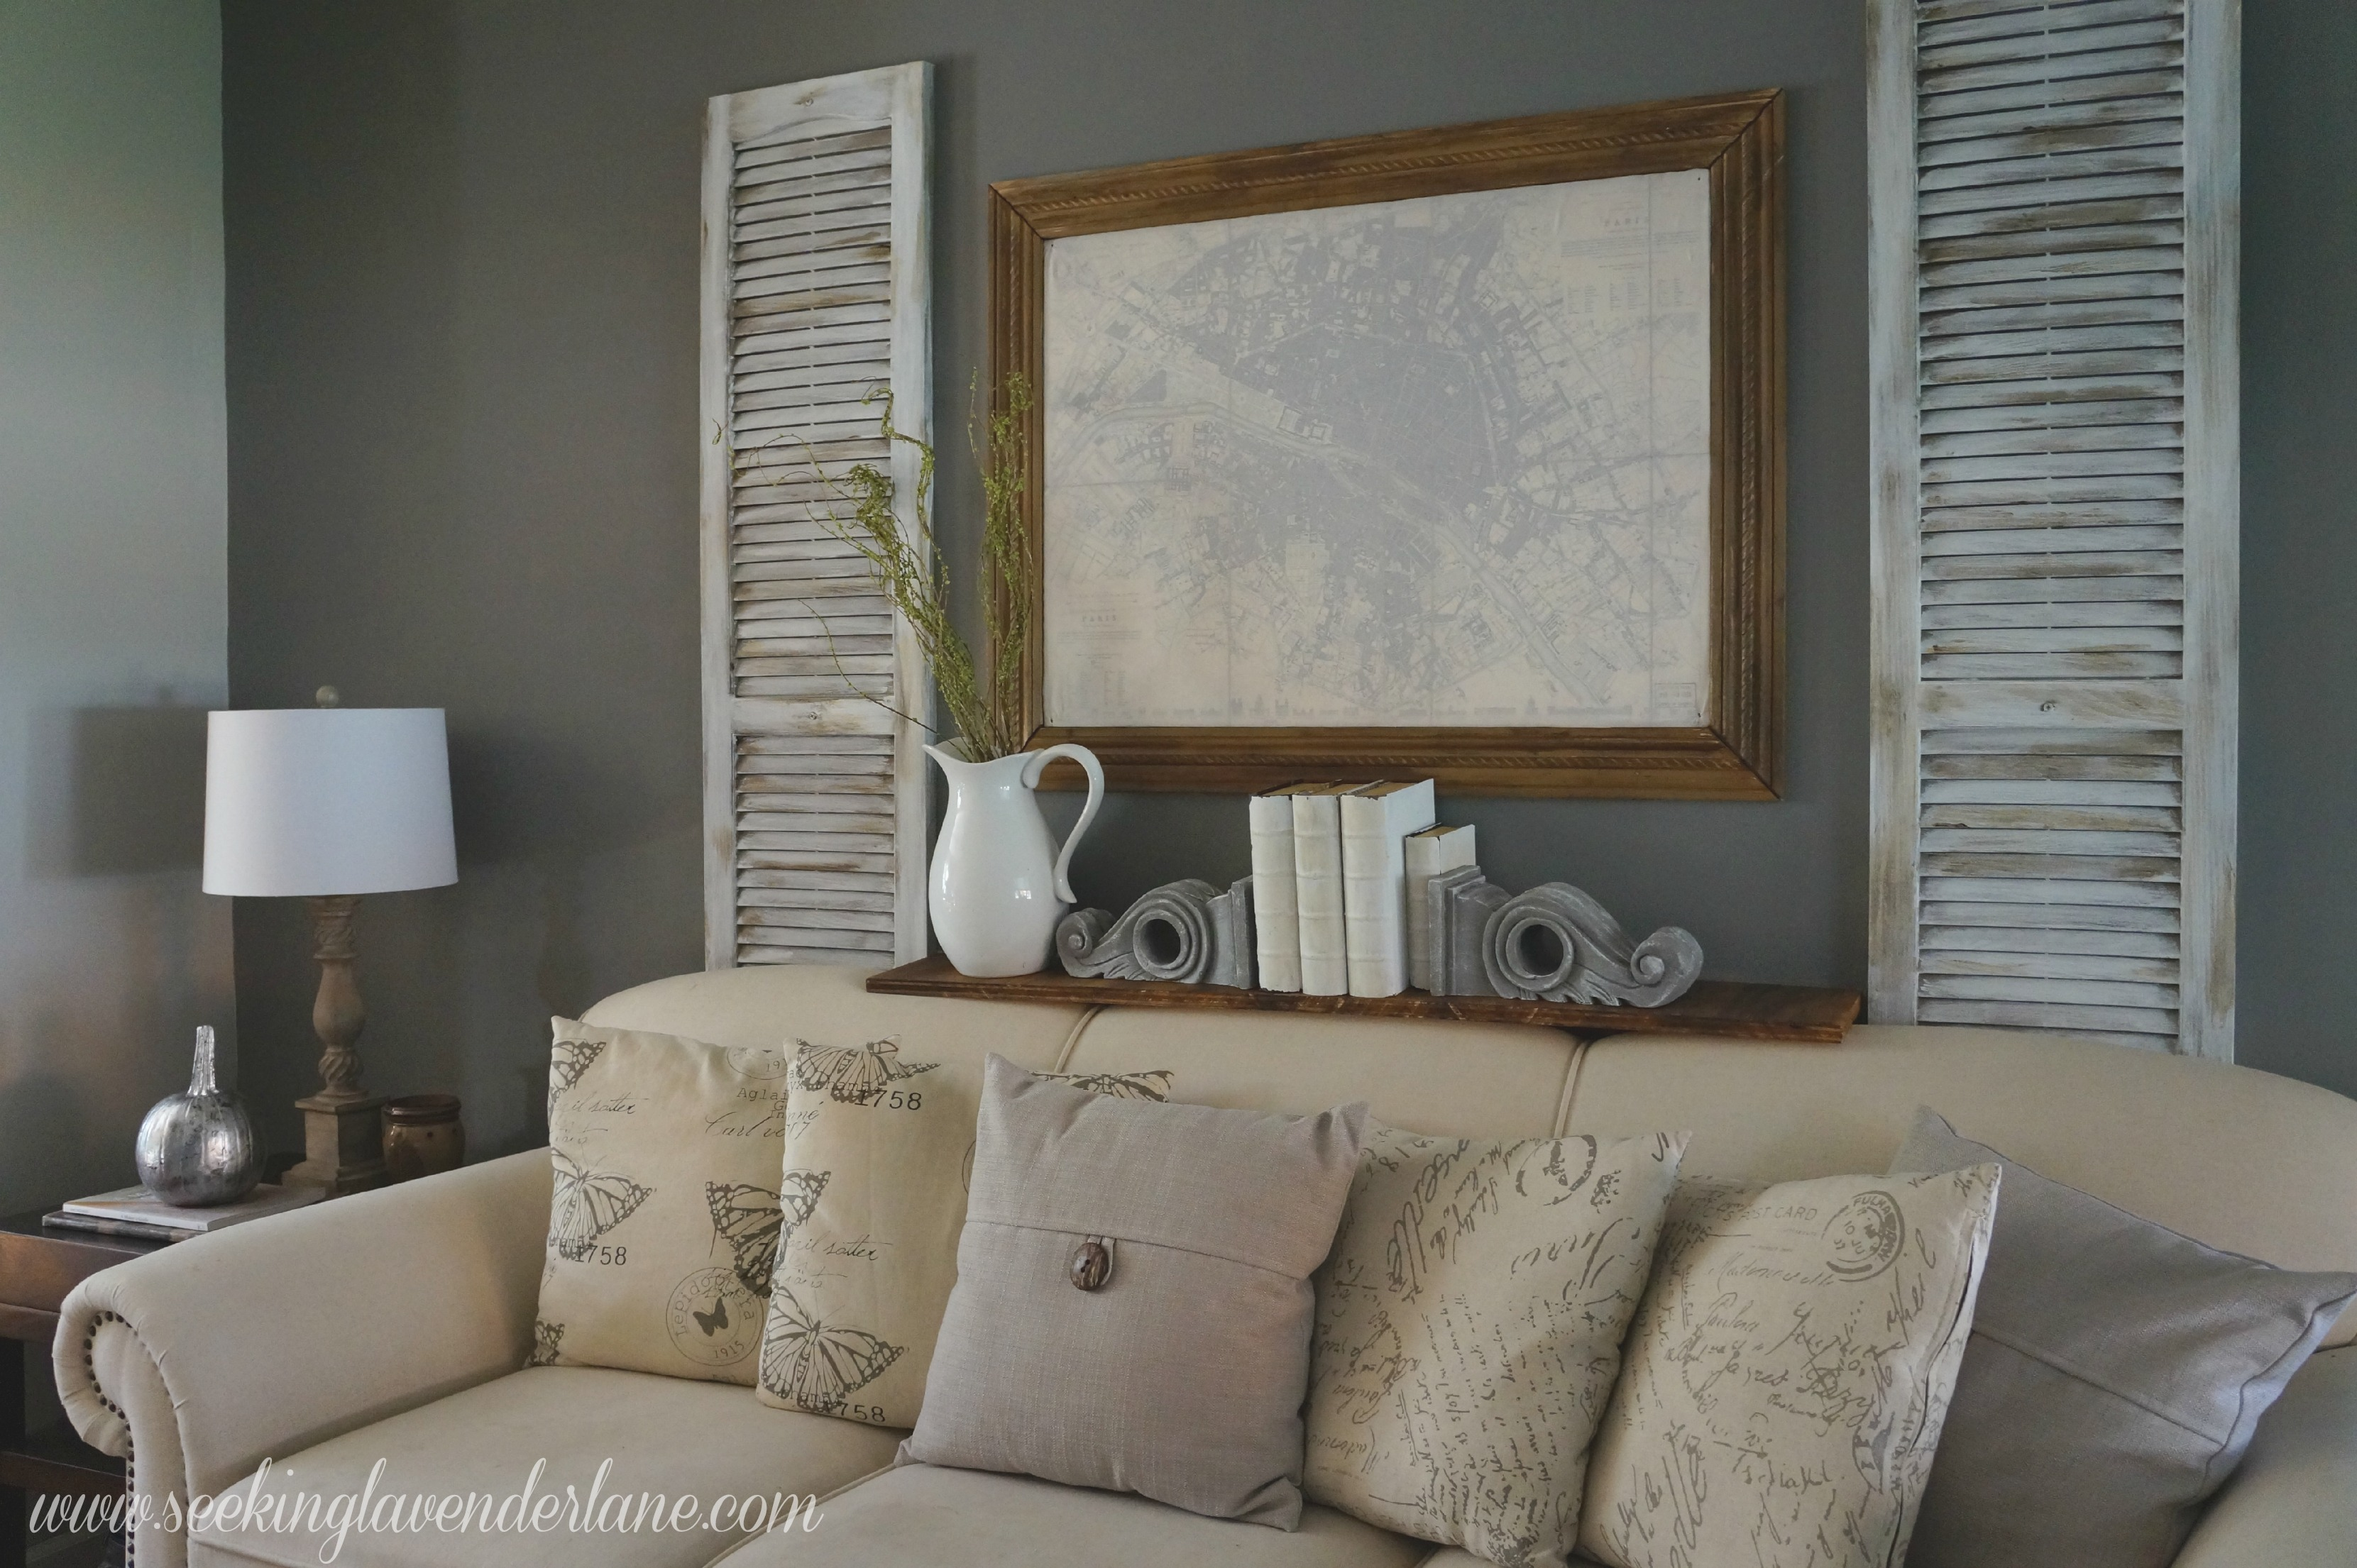 Dark Gray Accent Wall - Seeking Lavendar Lane